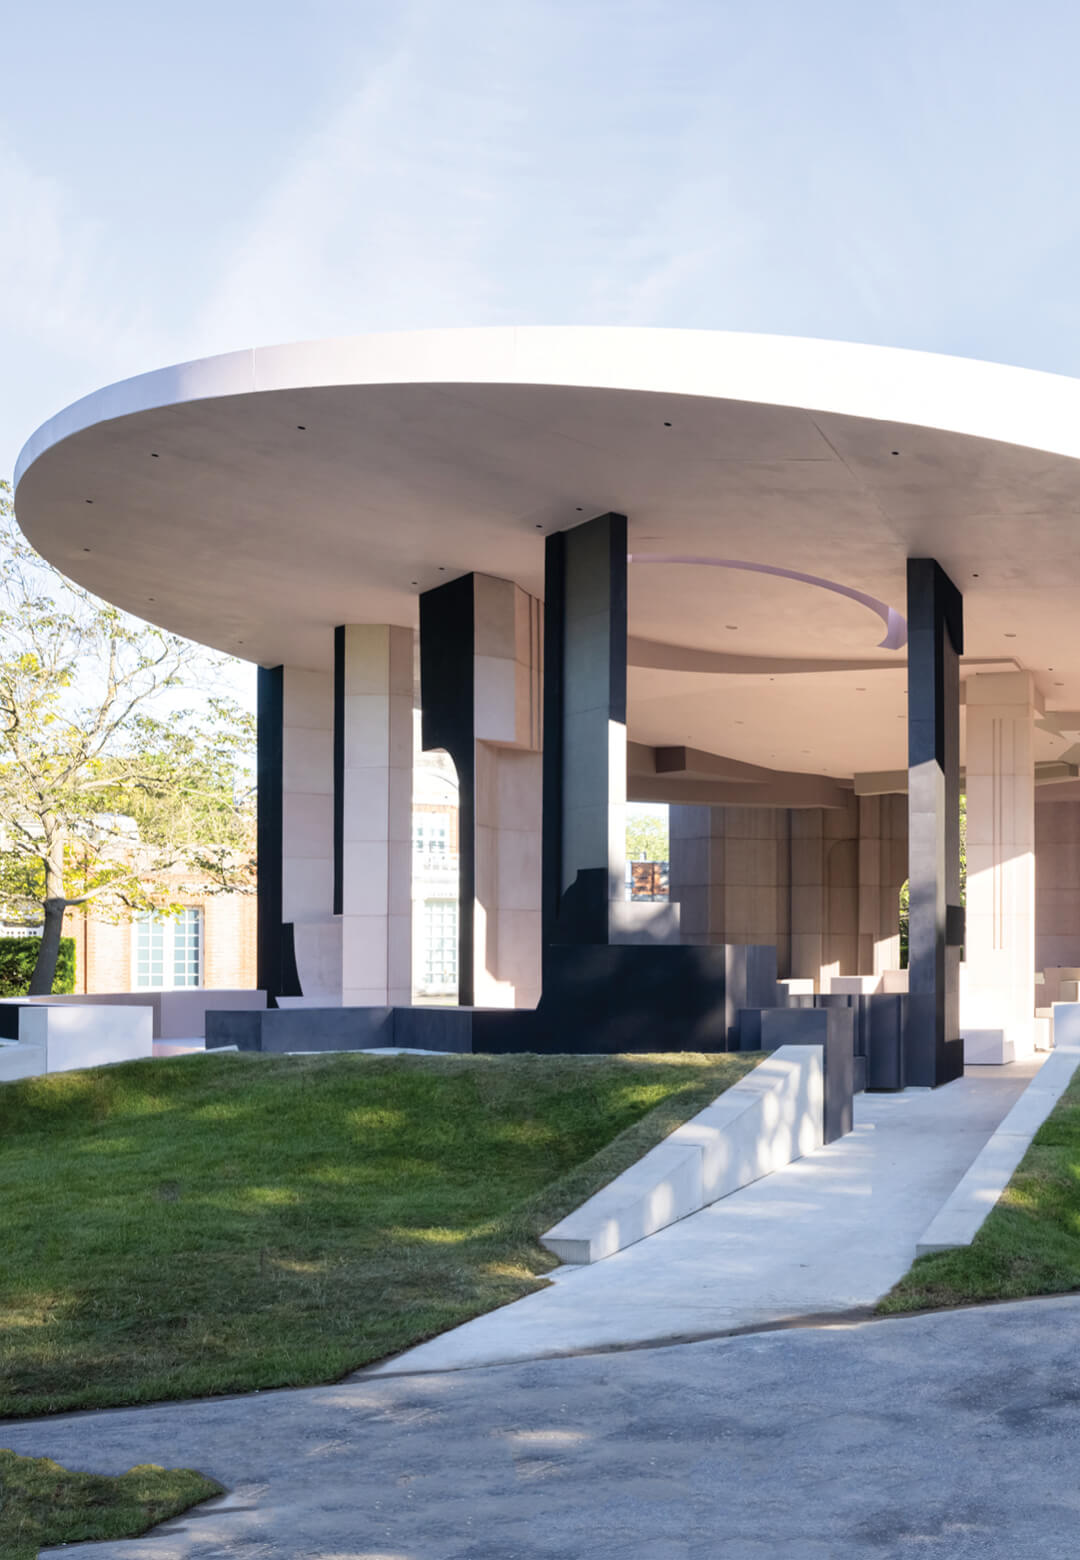 Exterior View: The 2021 Serpentine Pavilion, designed by South African Studio Counterspace, has opened to the public   The 2021 Serpentine Pavilion by Counterspace   STIRworld